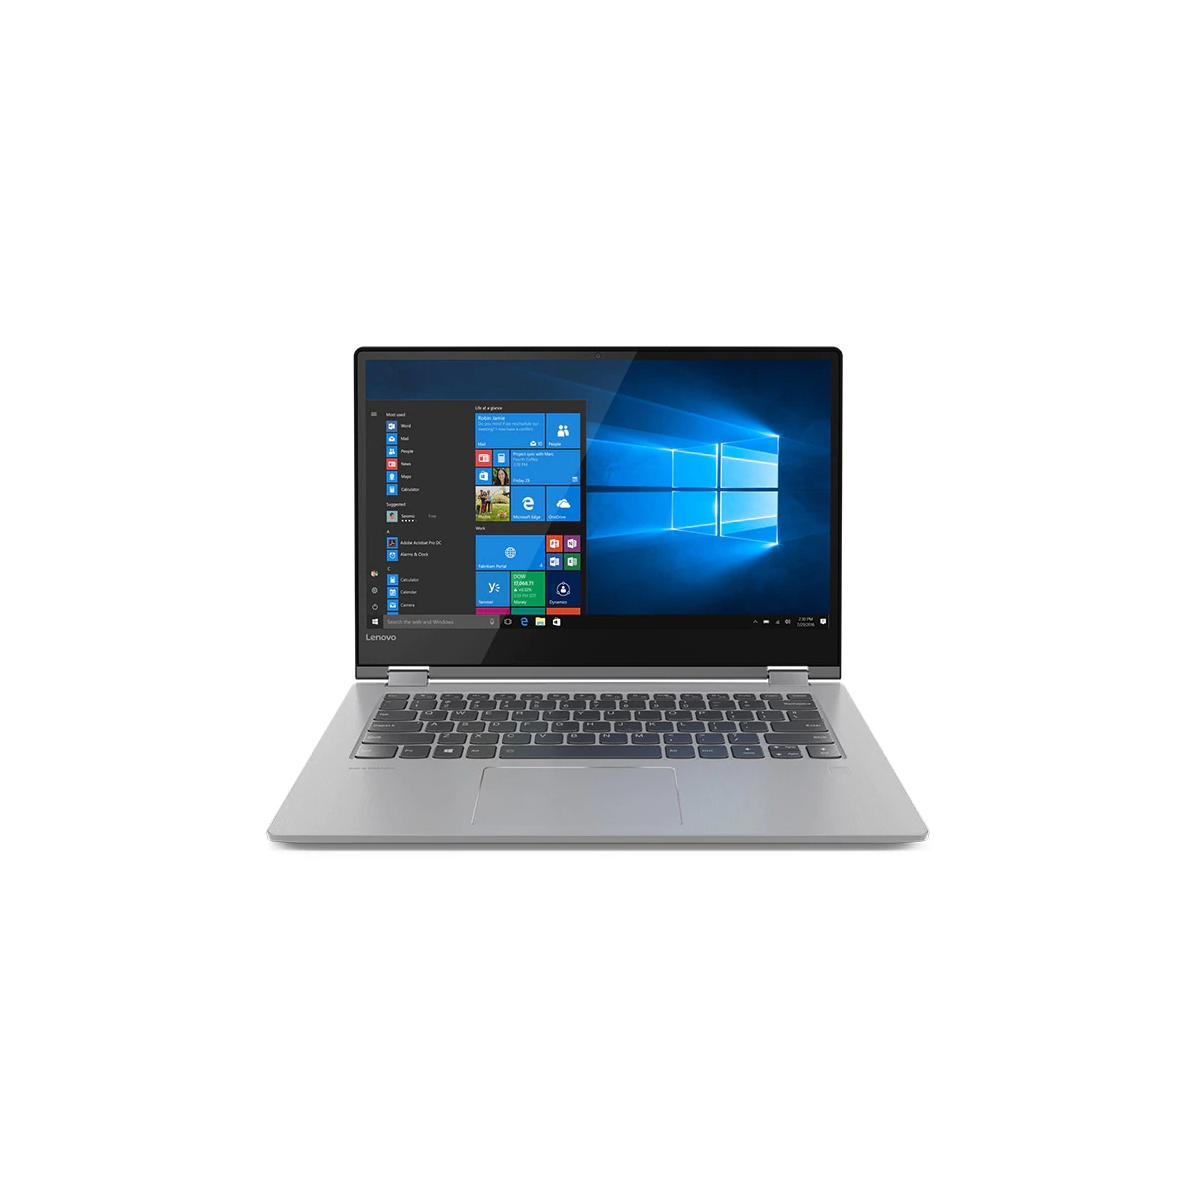 Lenovo Yoga 530-14 AMD